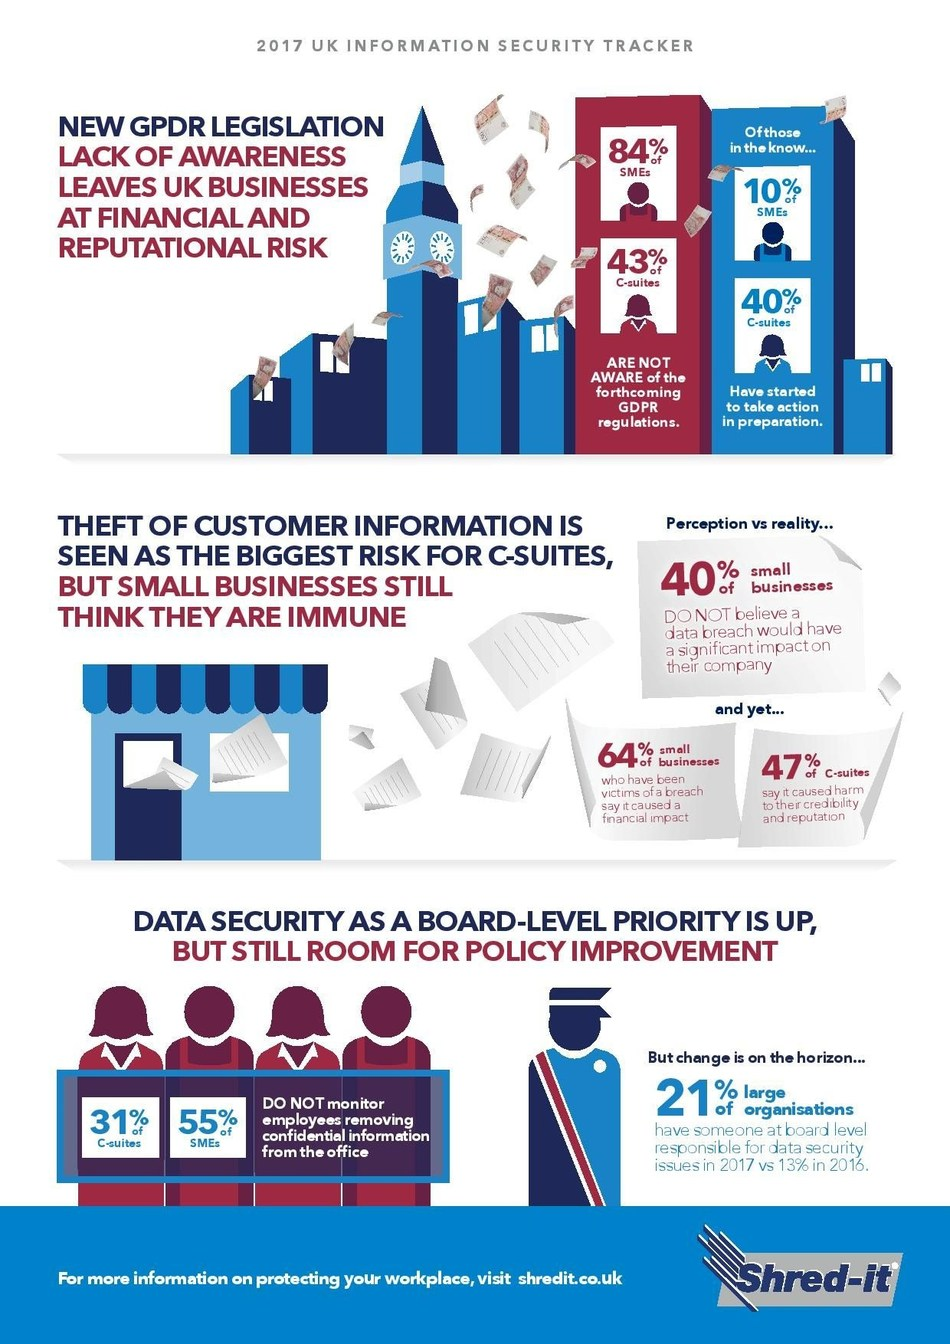 Shred-it 2017 Security Tracker Infographic (PRNewsfoto/Shred-it)